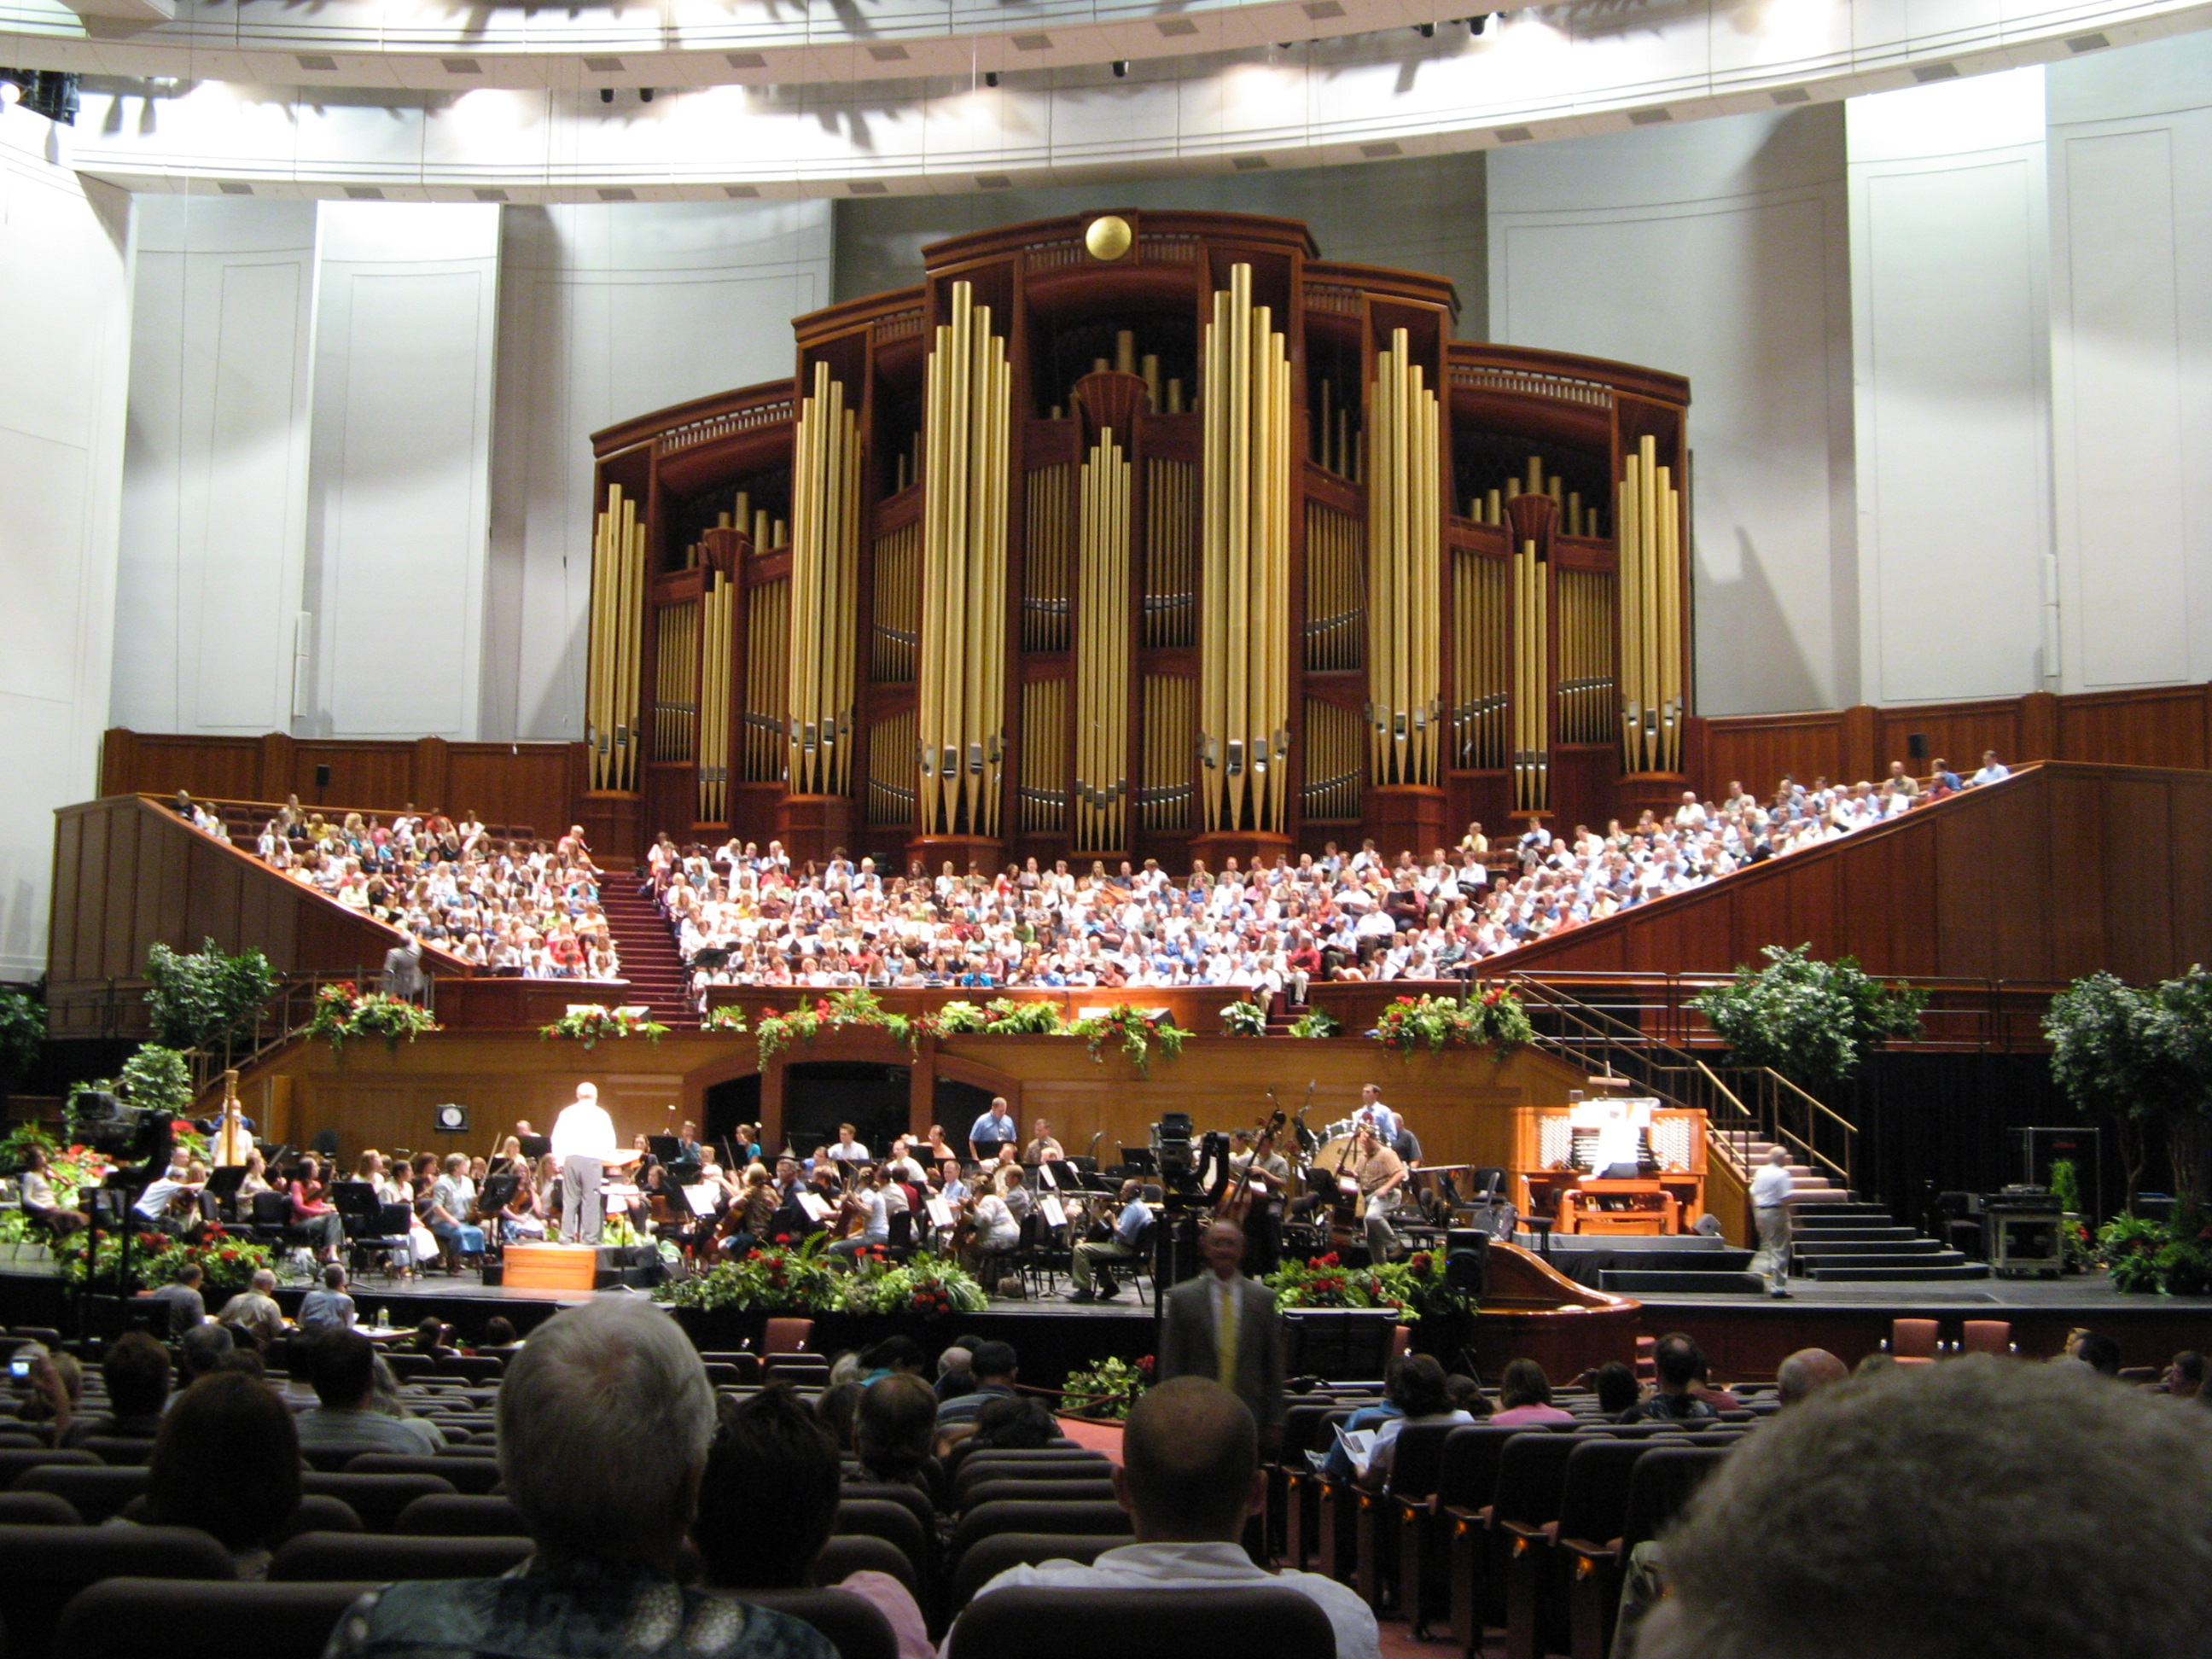 Temple Square, Salt Lake City - A Rehearsal At The Tabernacle